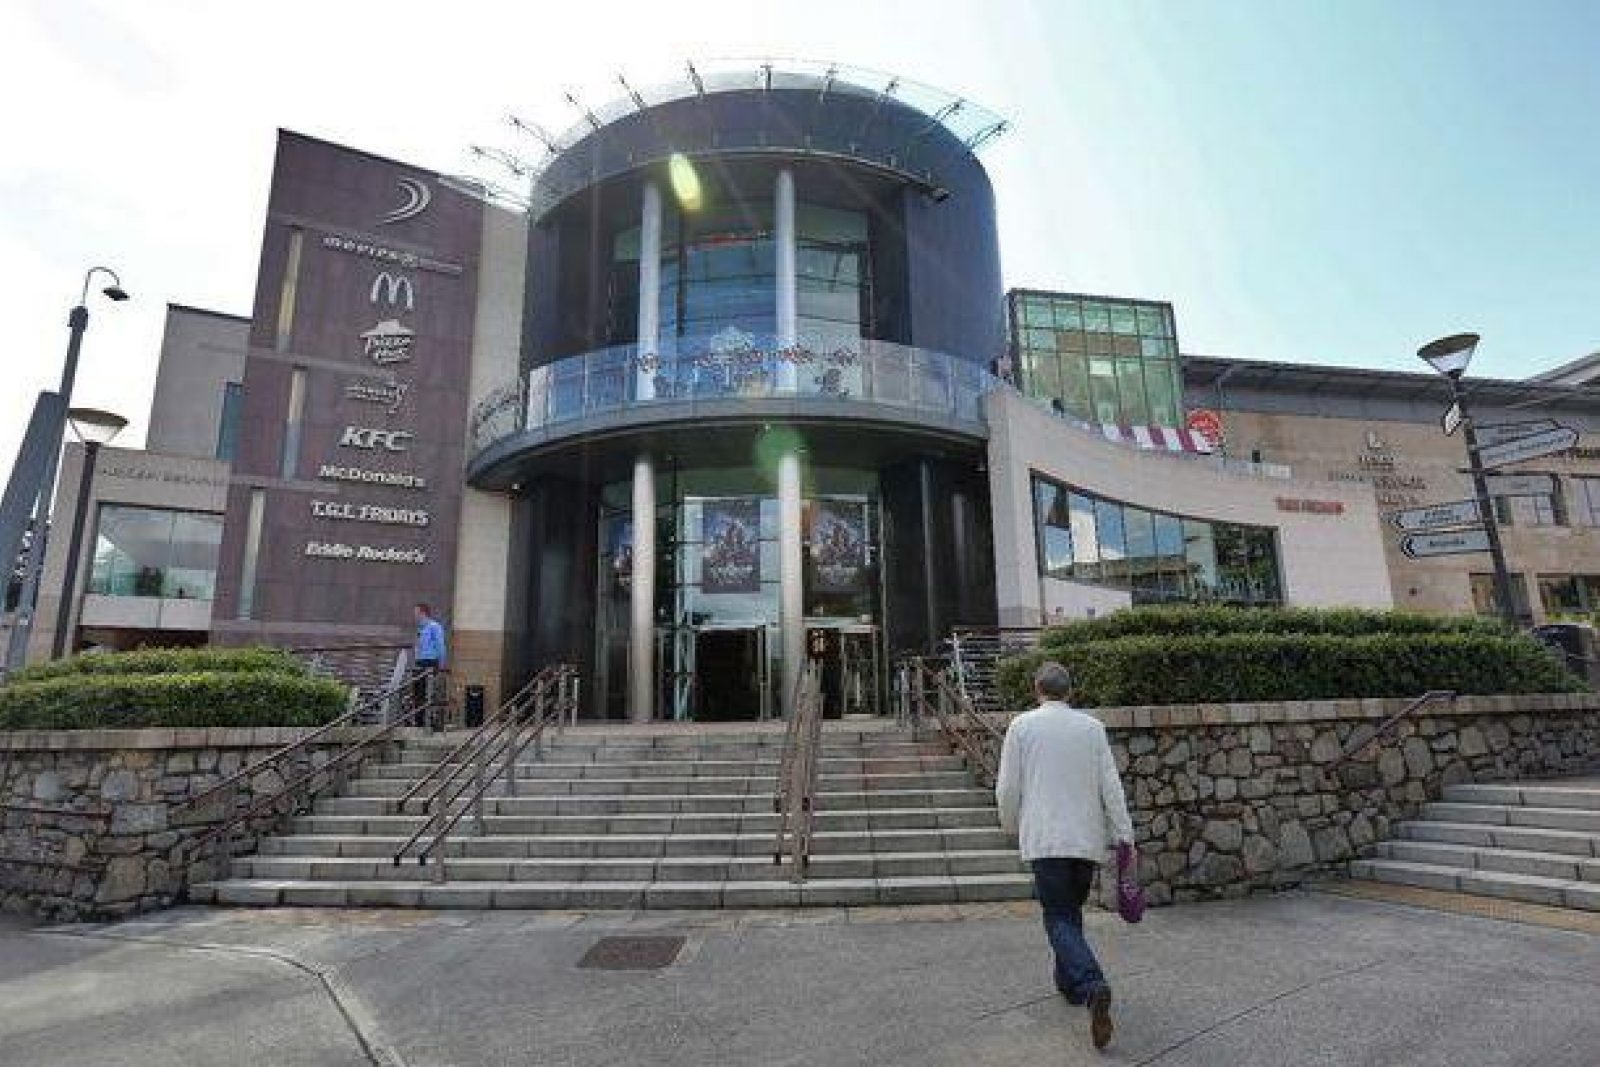 Dundrum Town Centre Cinema